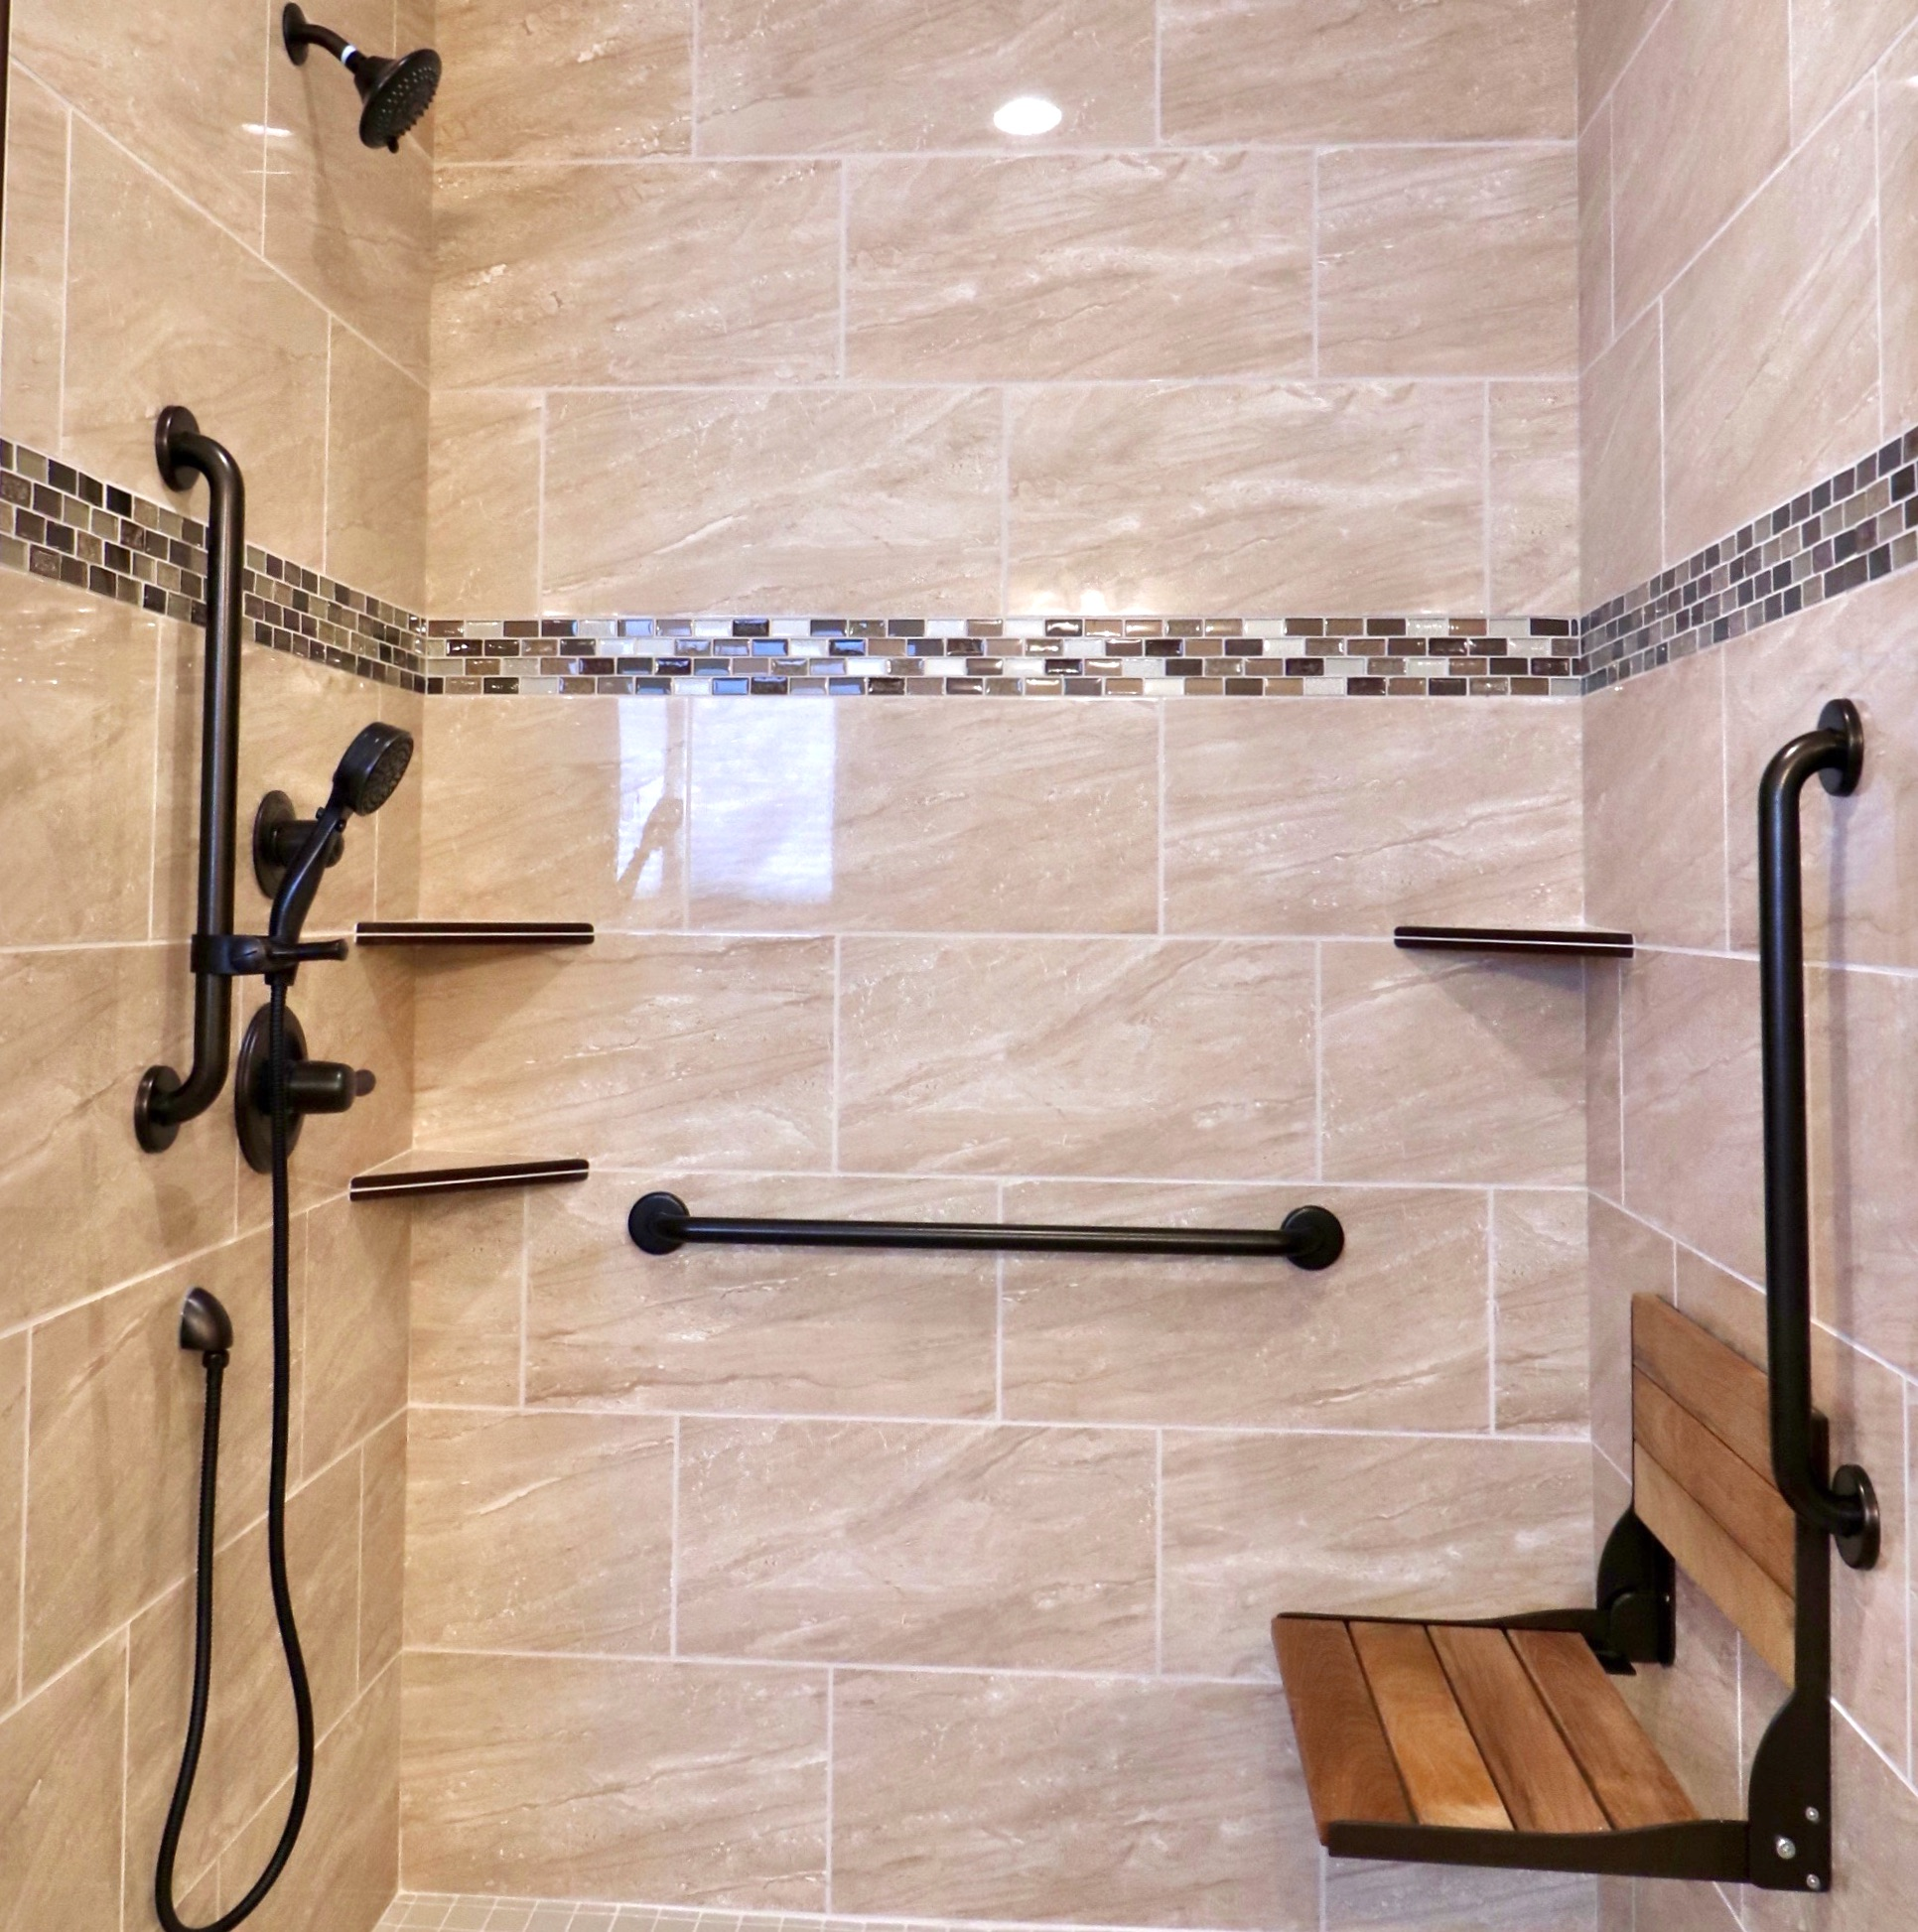 Grab Bars for Bathrooms | Disability Remodeling